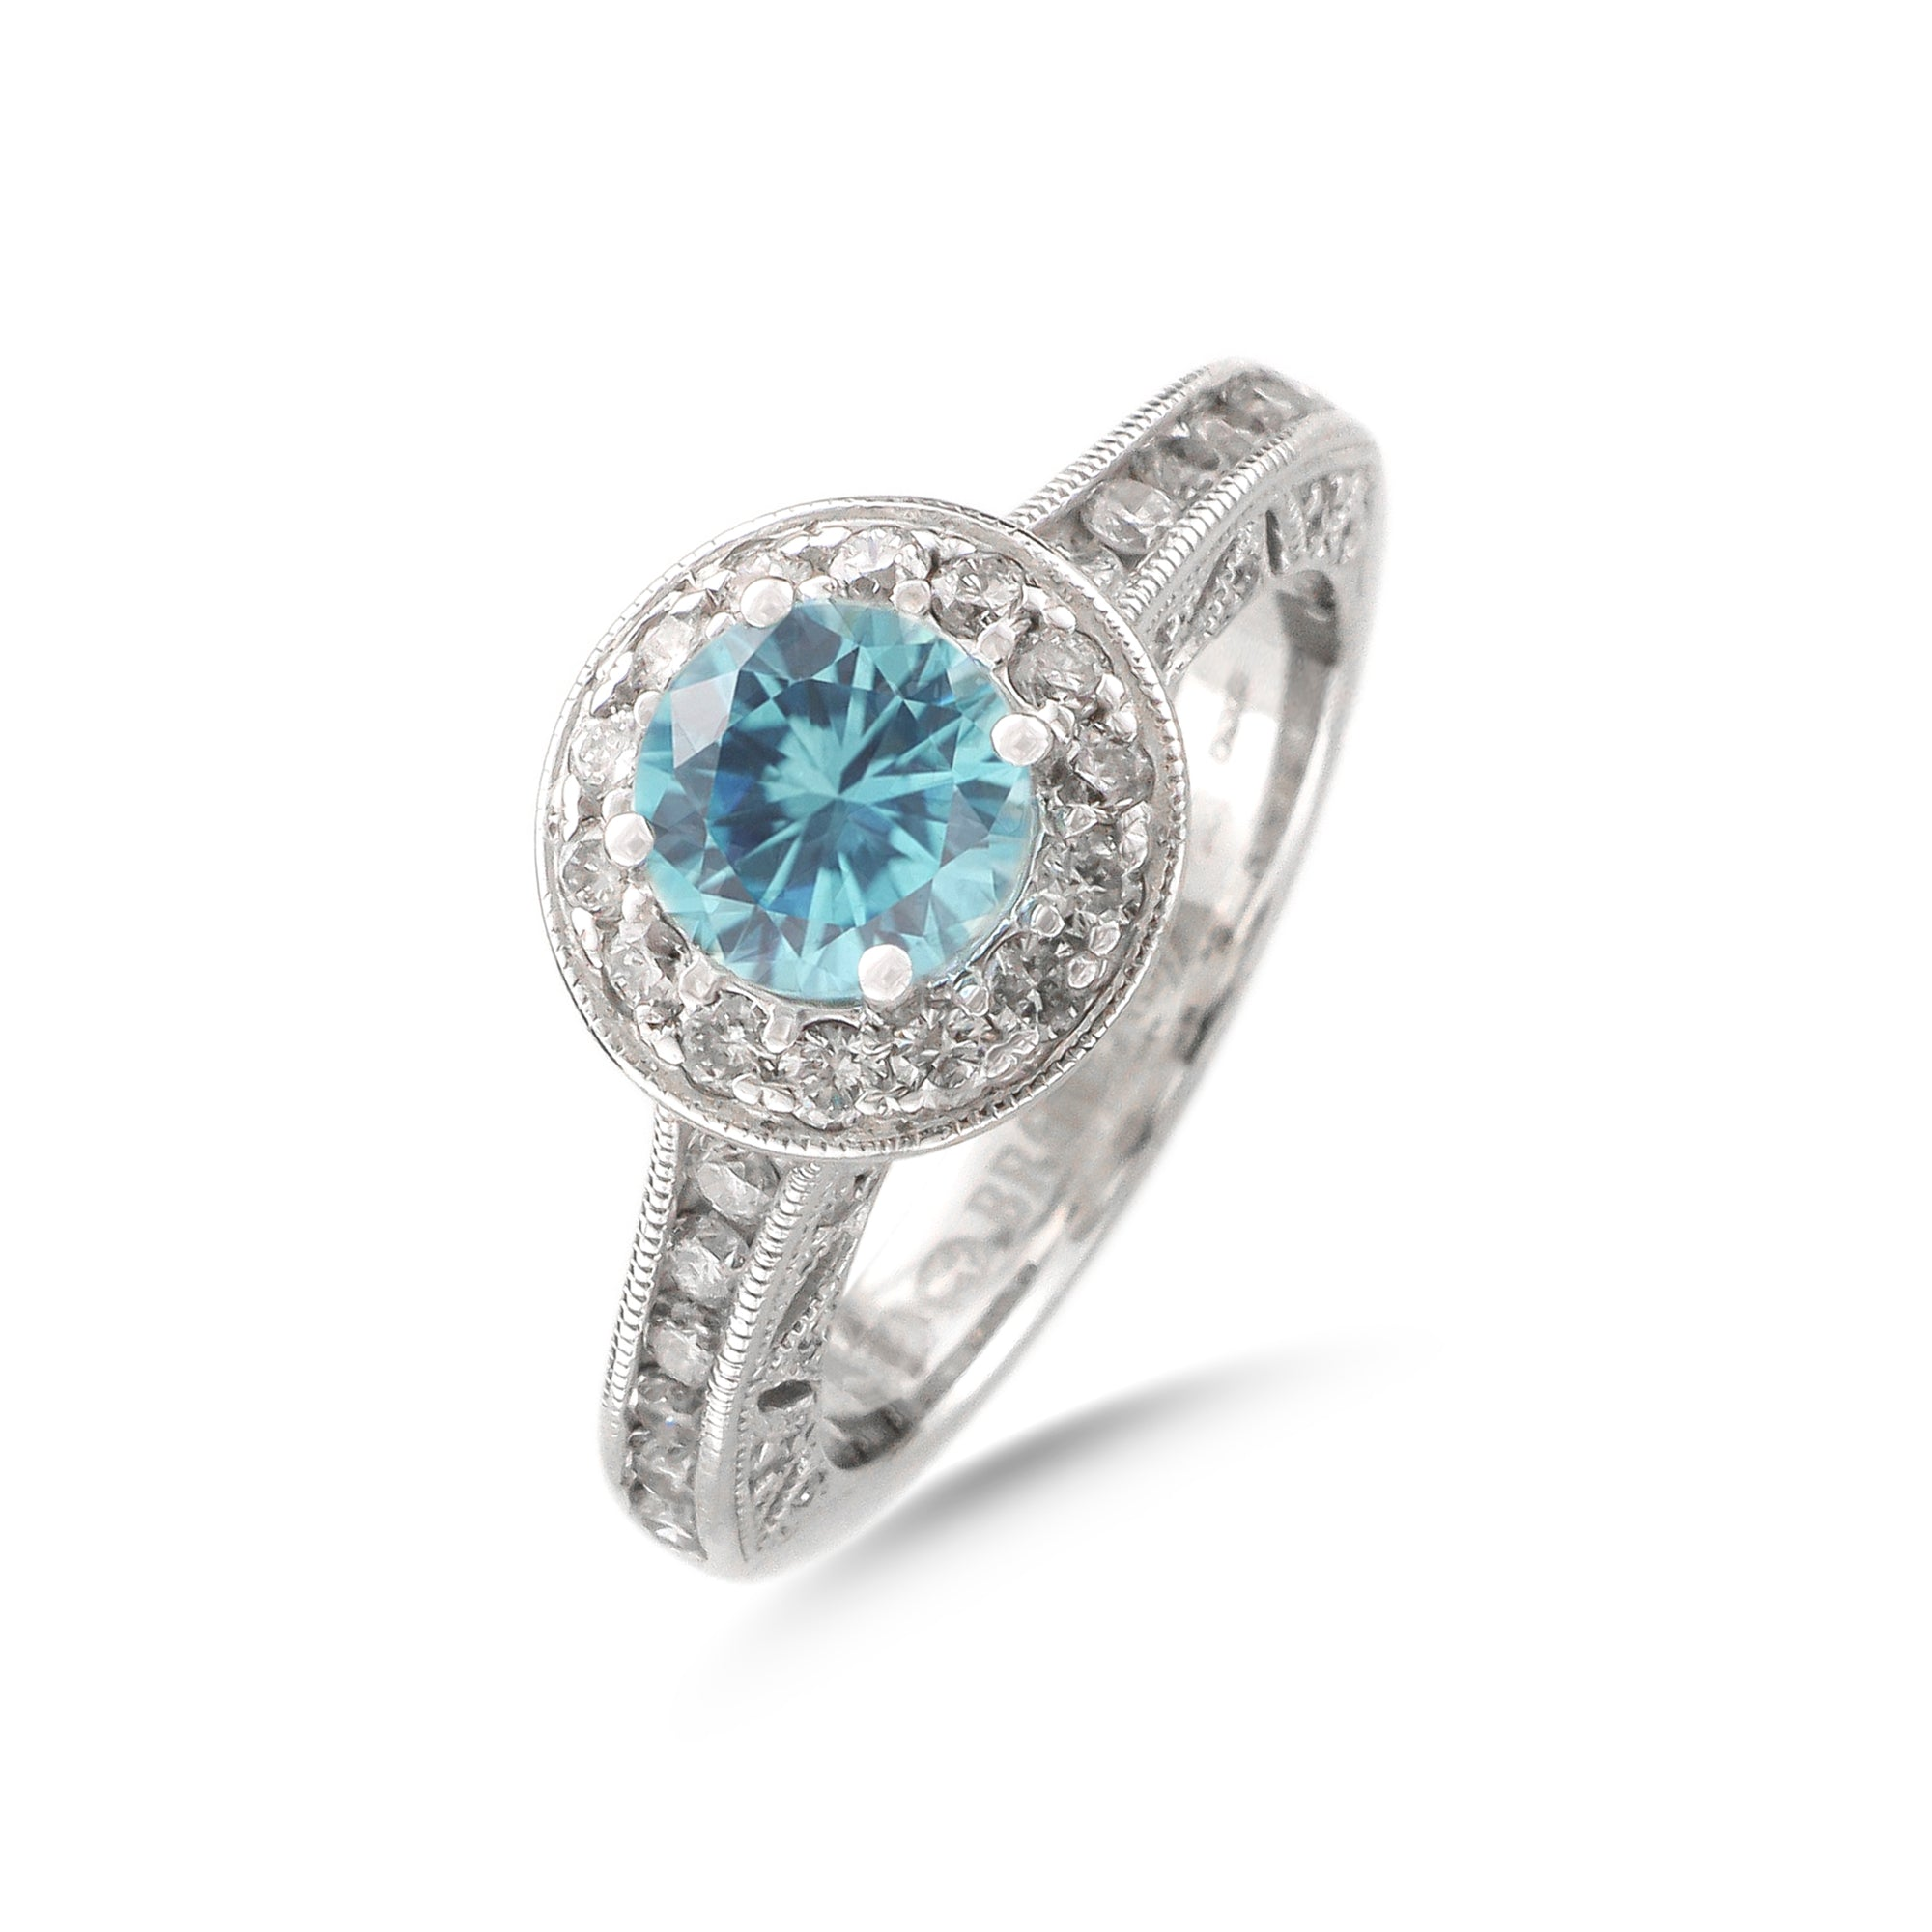 Vintage 18ct White Gold Halo Aquamarine Ring